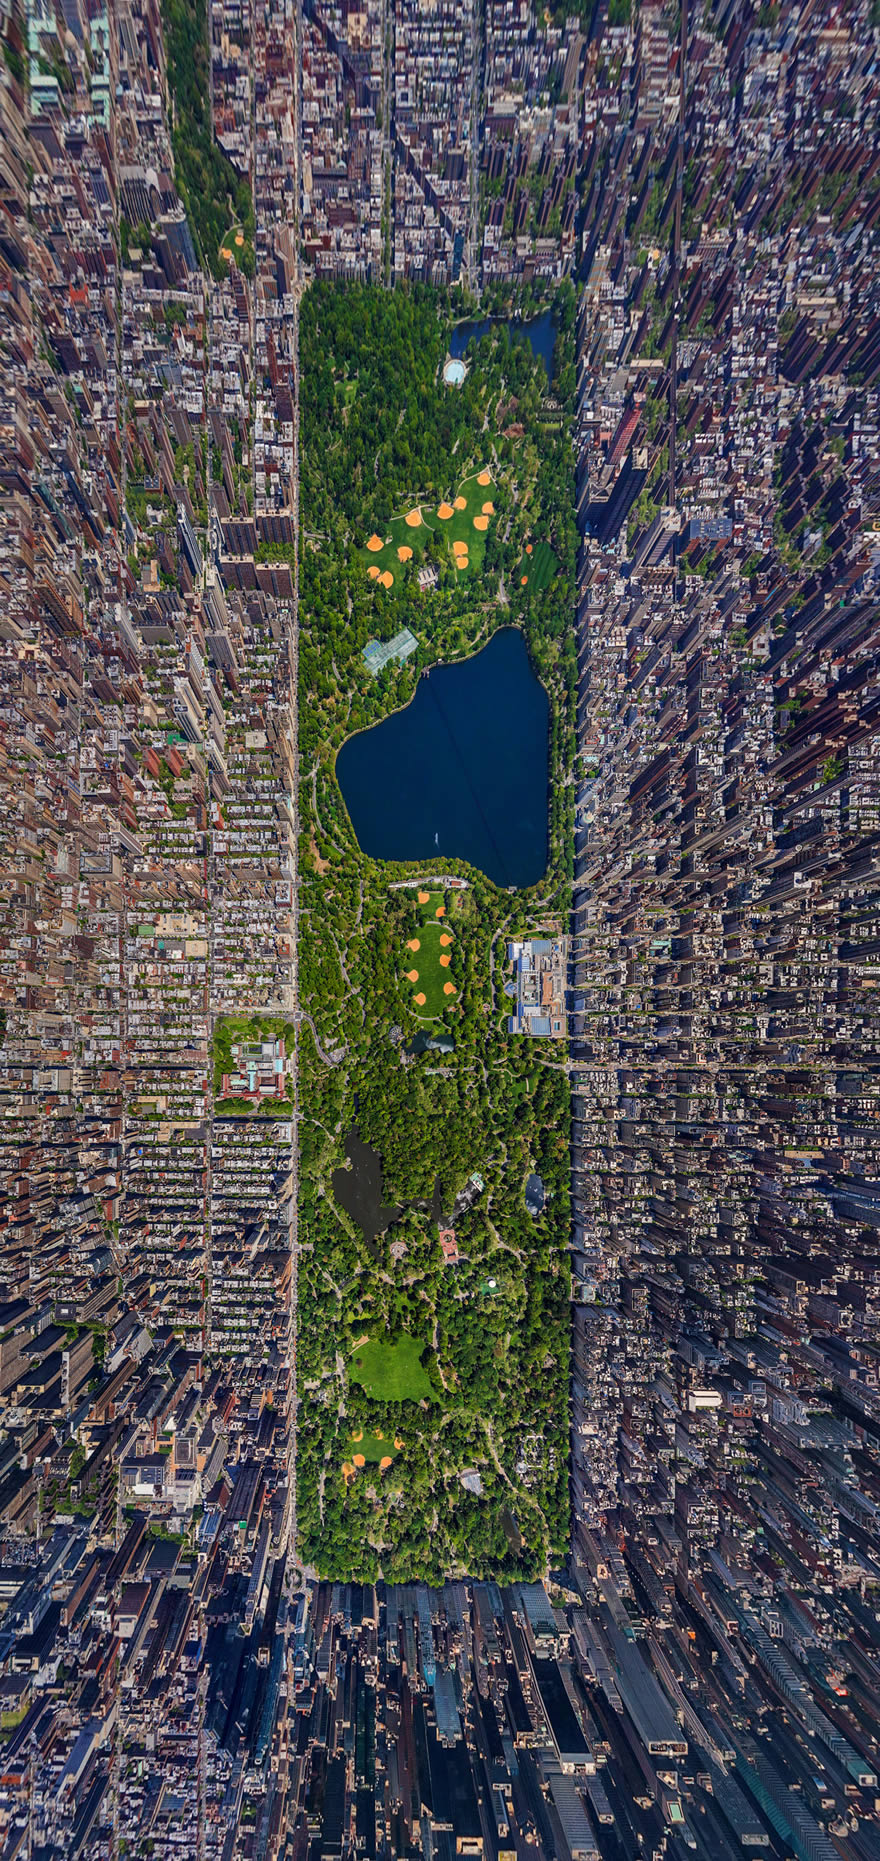 New York City Central Park - from above